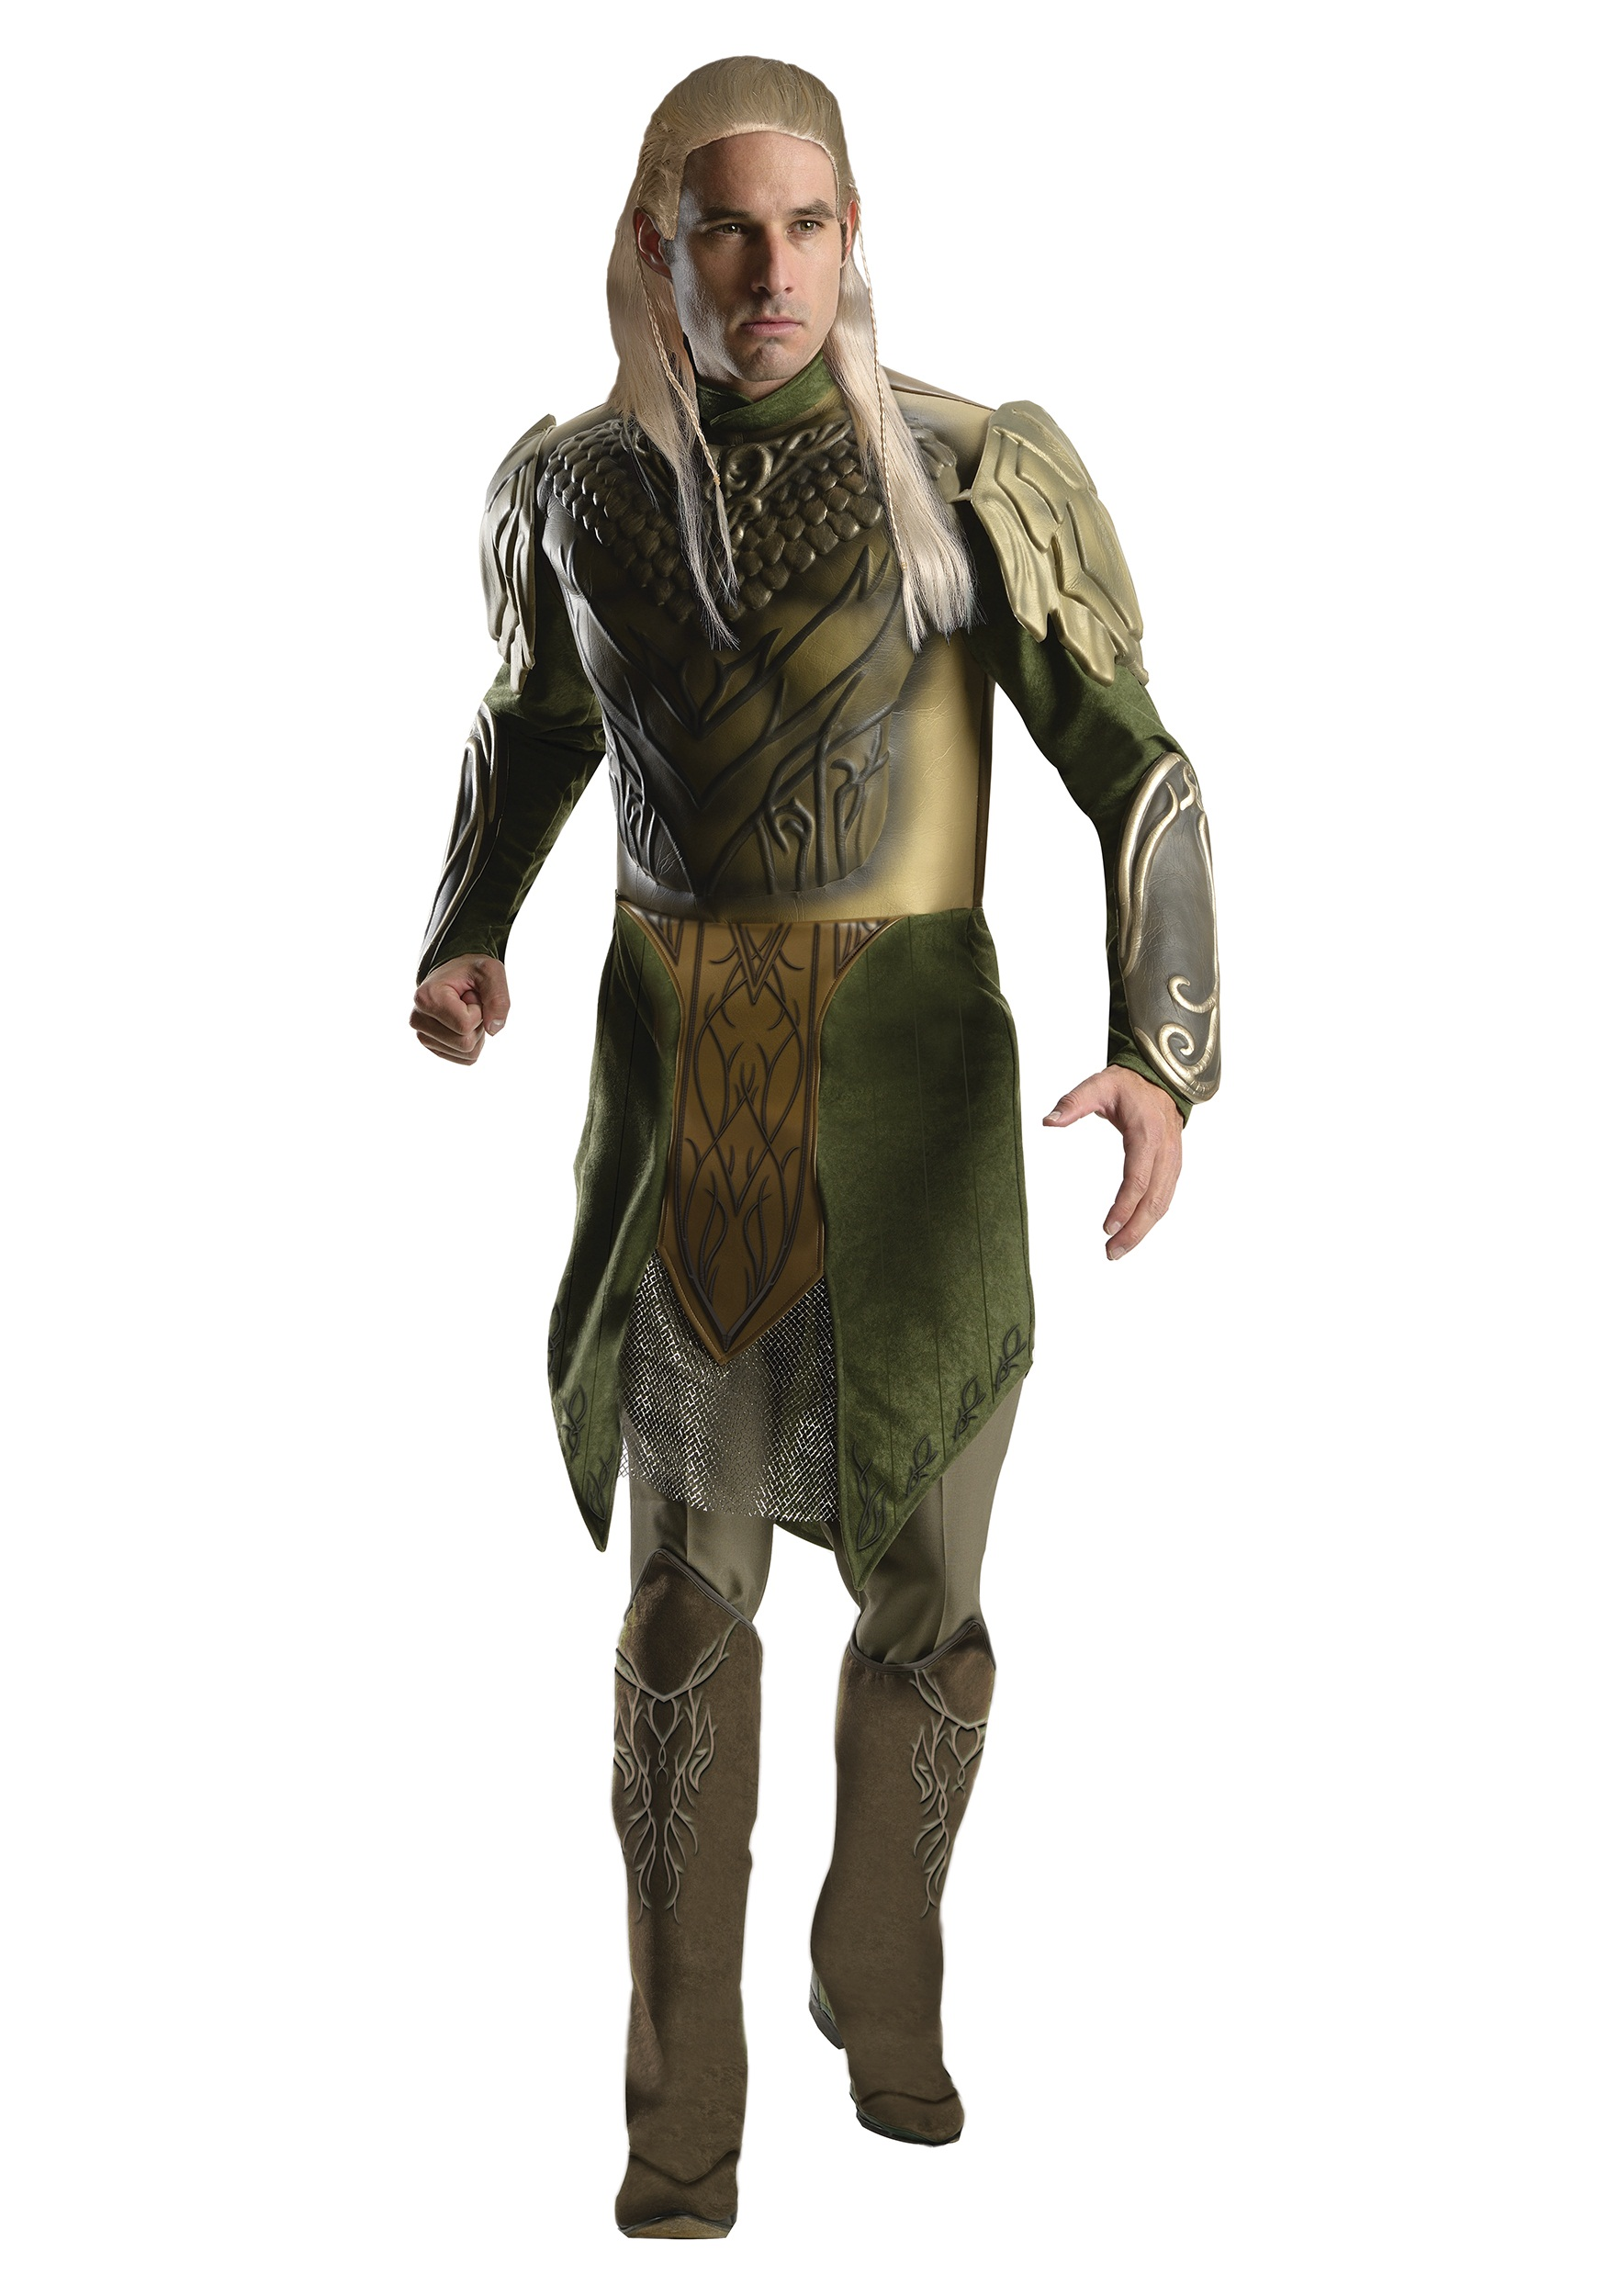 DELUXE ADULT LEGOLAS COSTUME with tunic and boot tops included